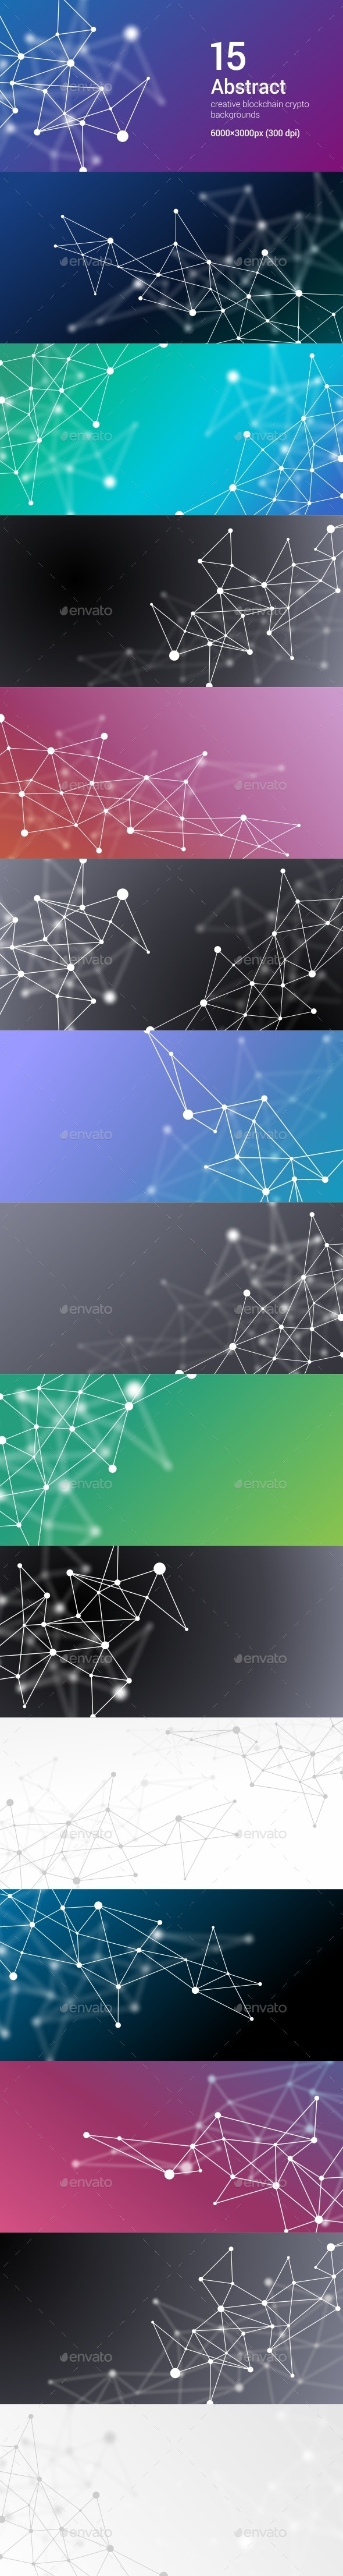 15 Abstract Futuristic Crypto Blockchain Backgrounds. White Dots and Shapes in Triangles Set 4